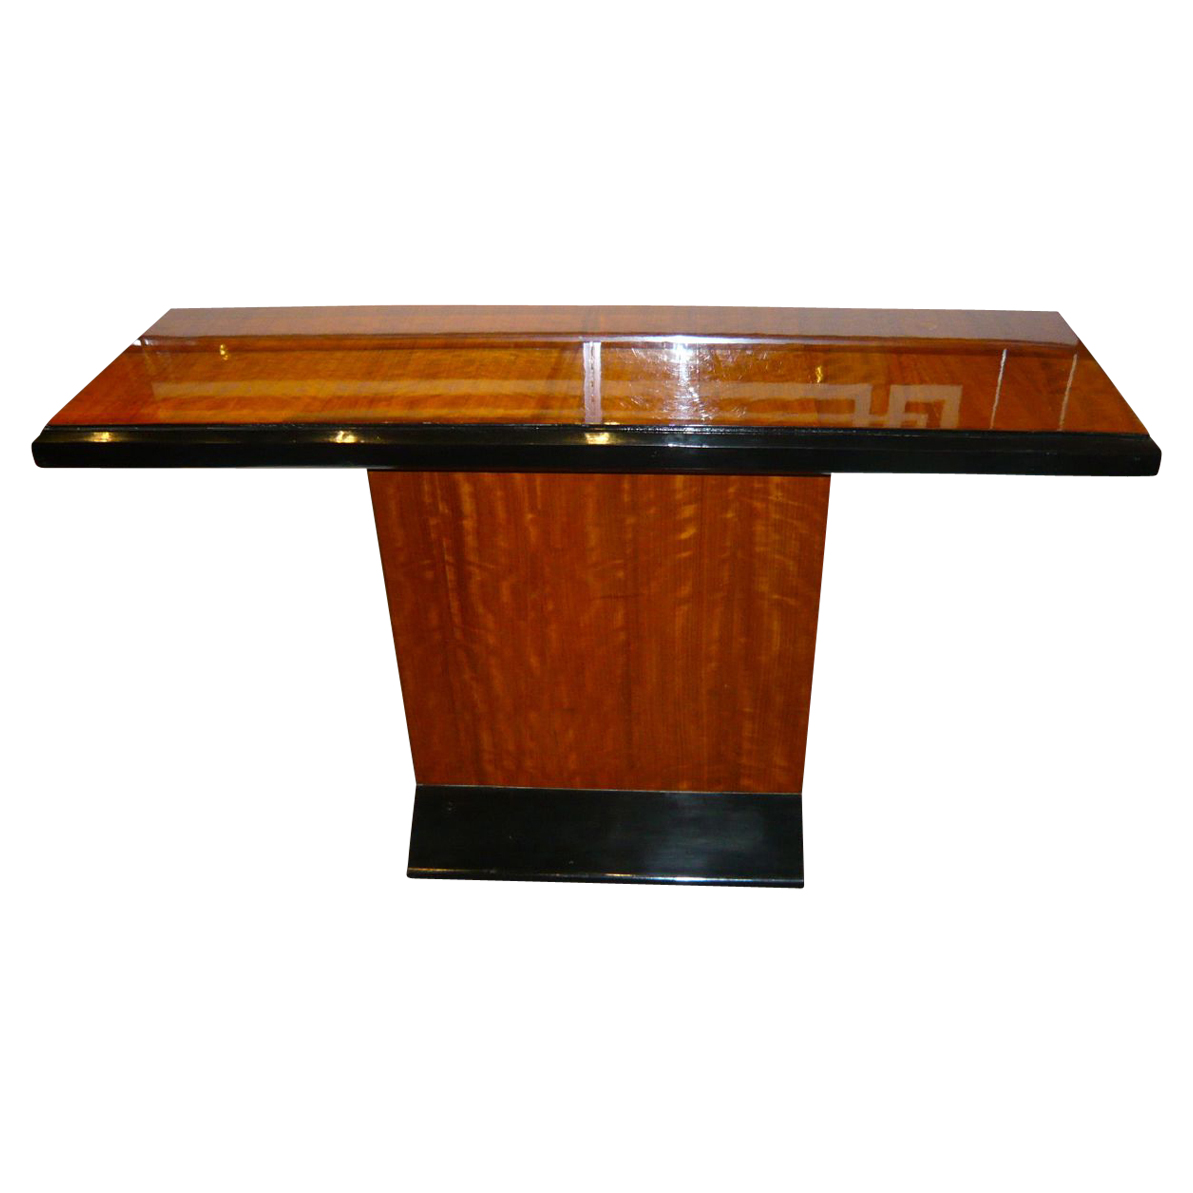 Art Deco console with a Biedermeier point of view